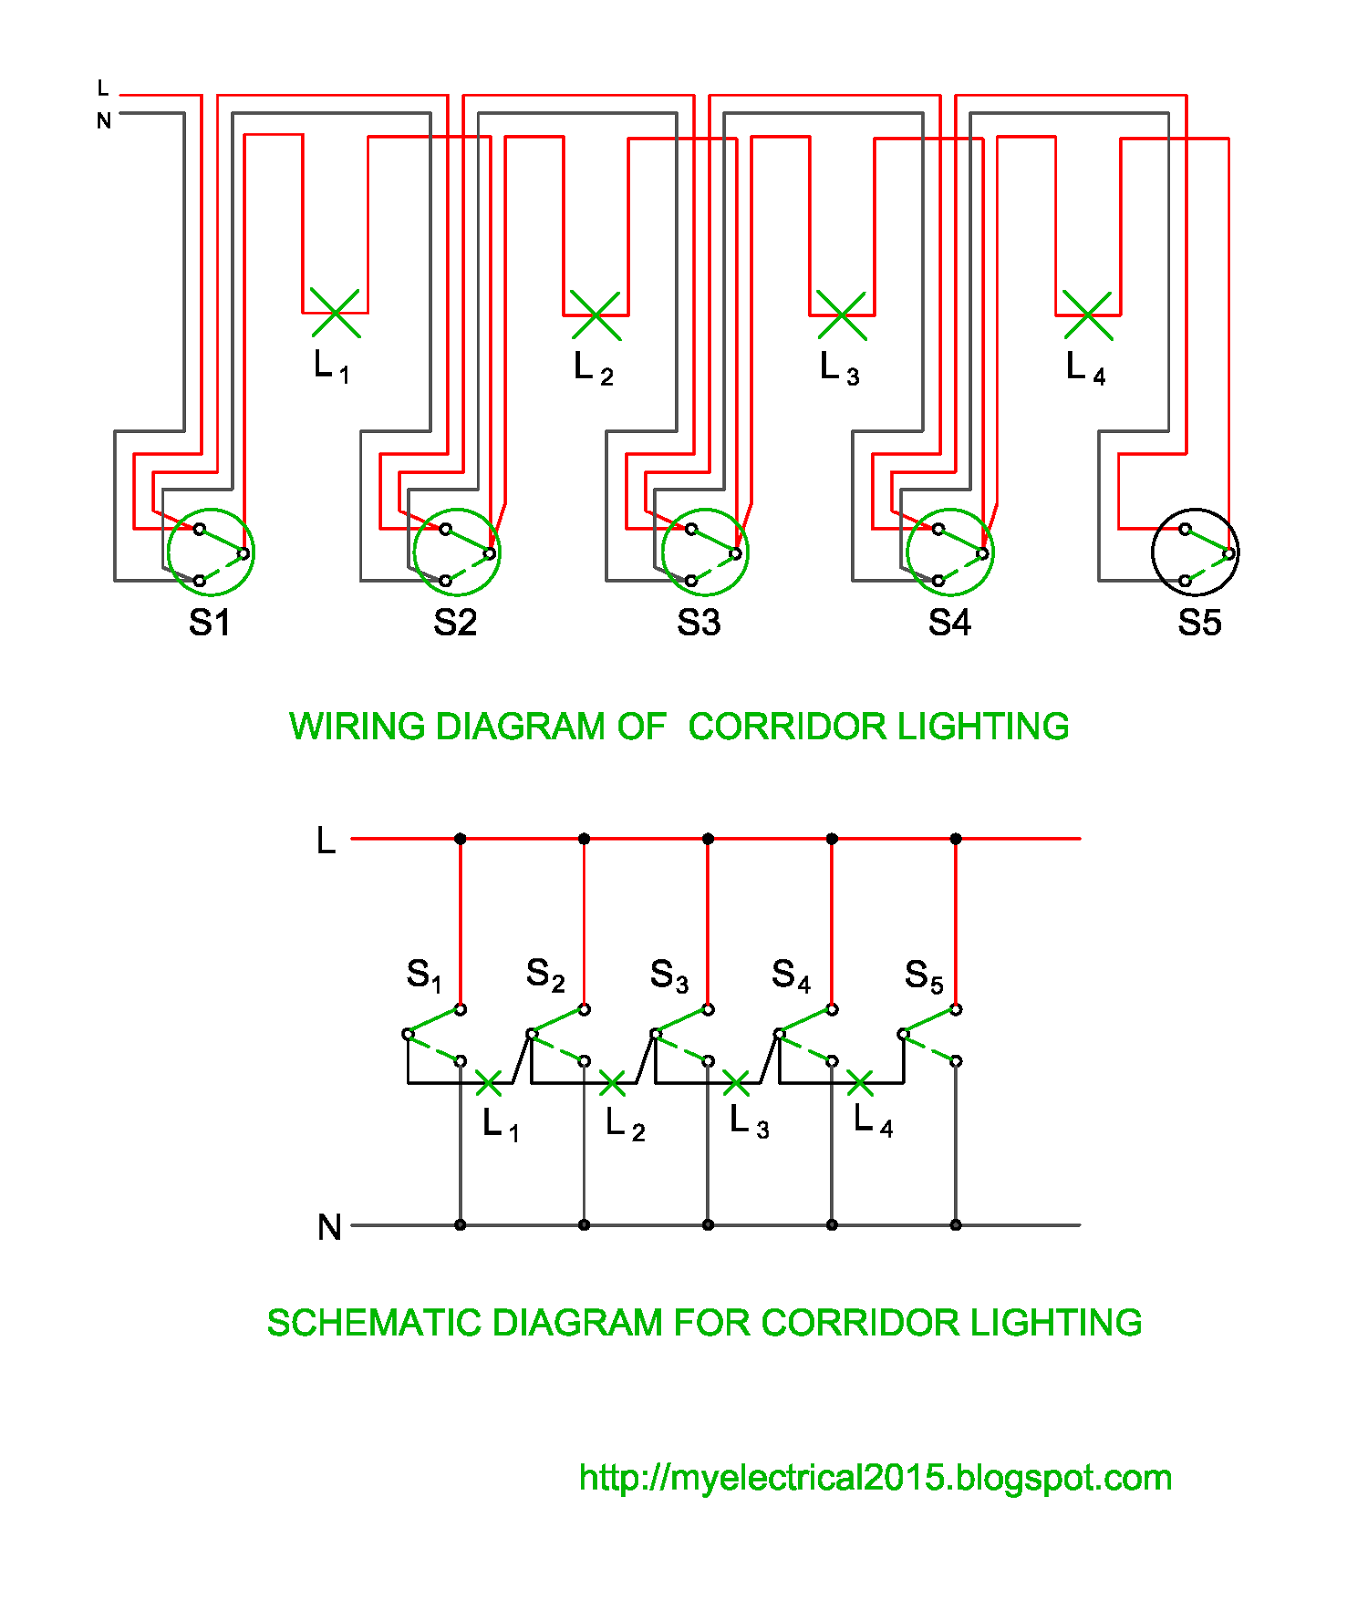 Wiring And Schematic Diagram of Corridor Lighting ... on